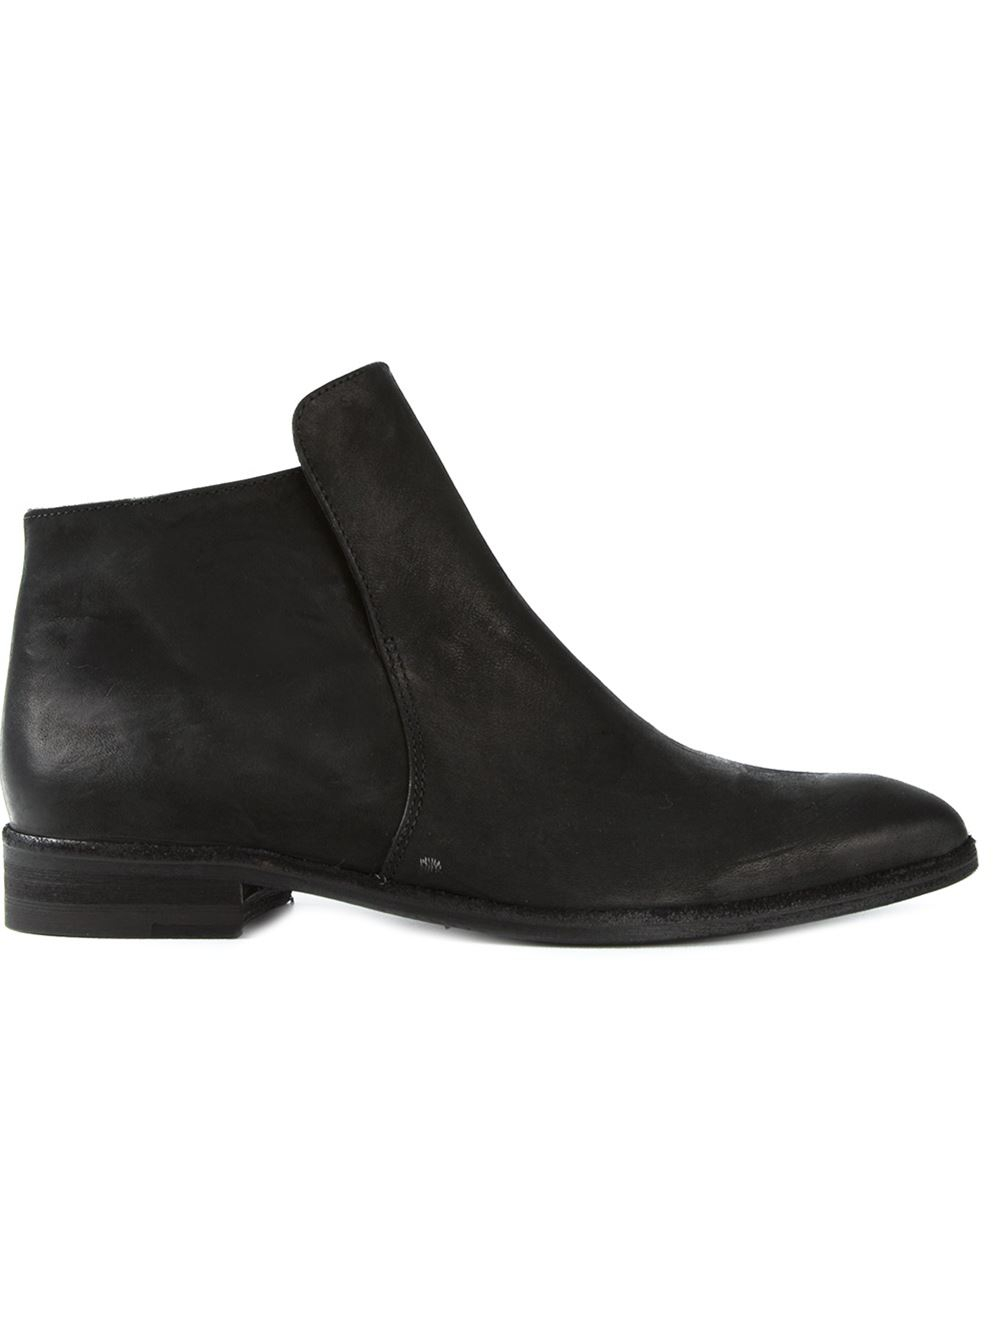 Last Boots In The Lyst Ankle Black 'giselle' Conspiracy zUwqT